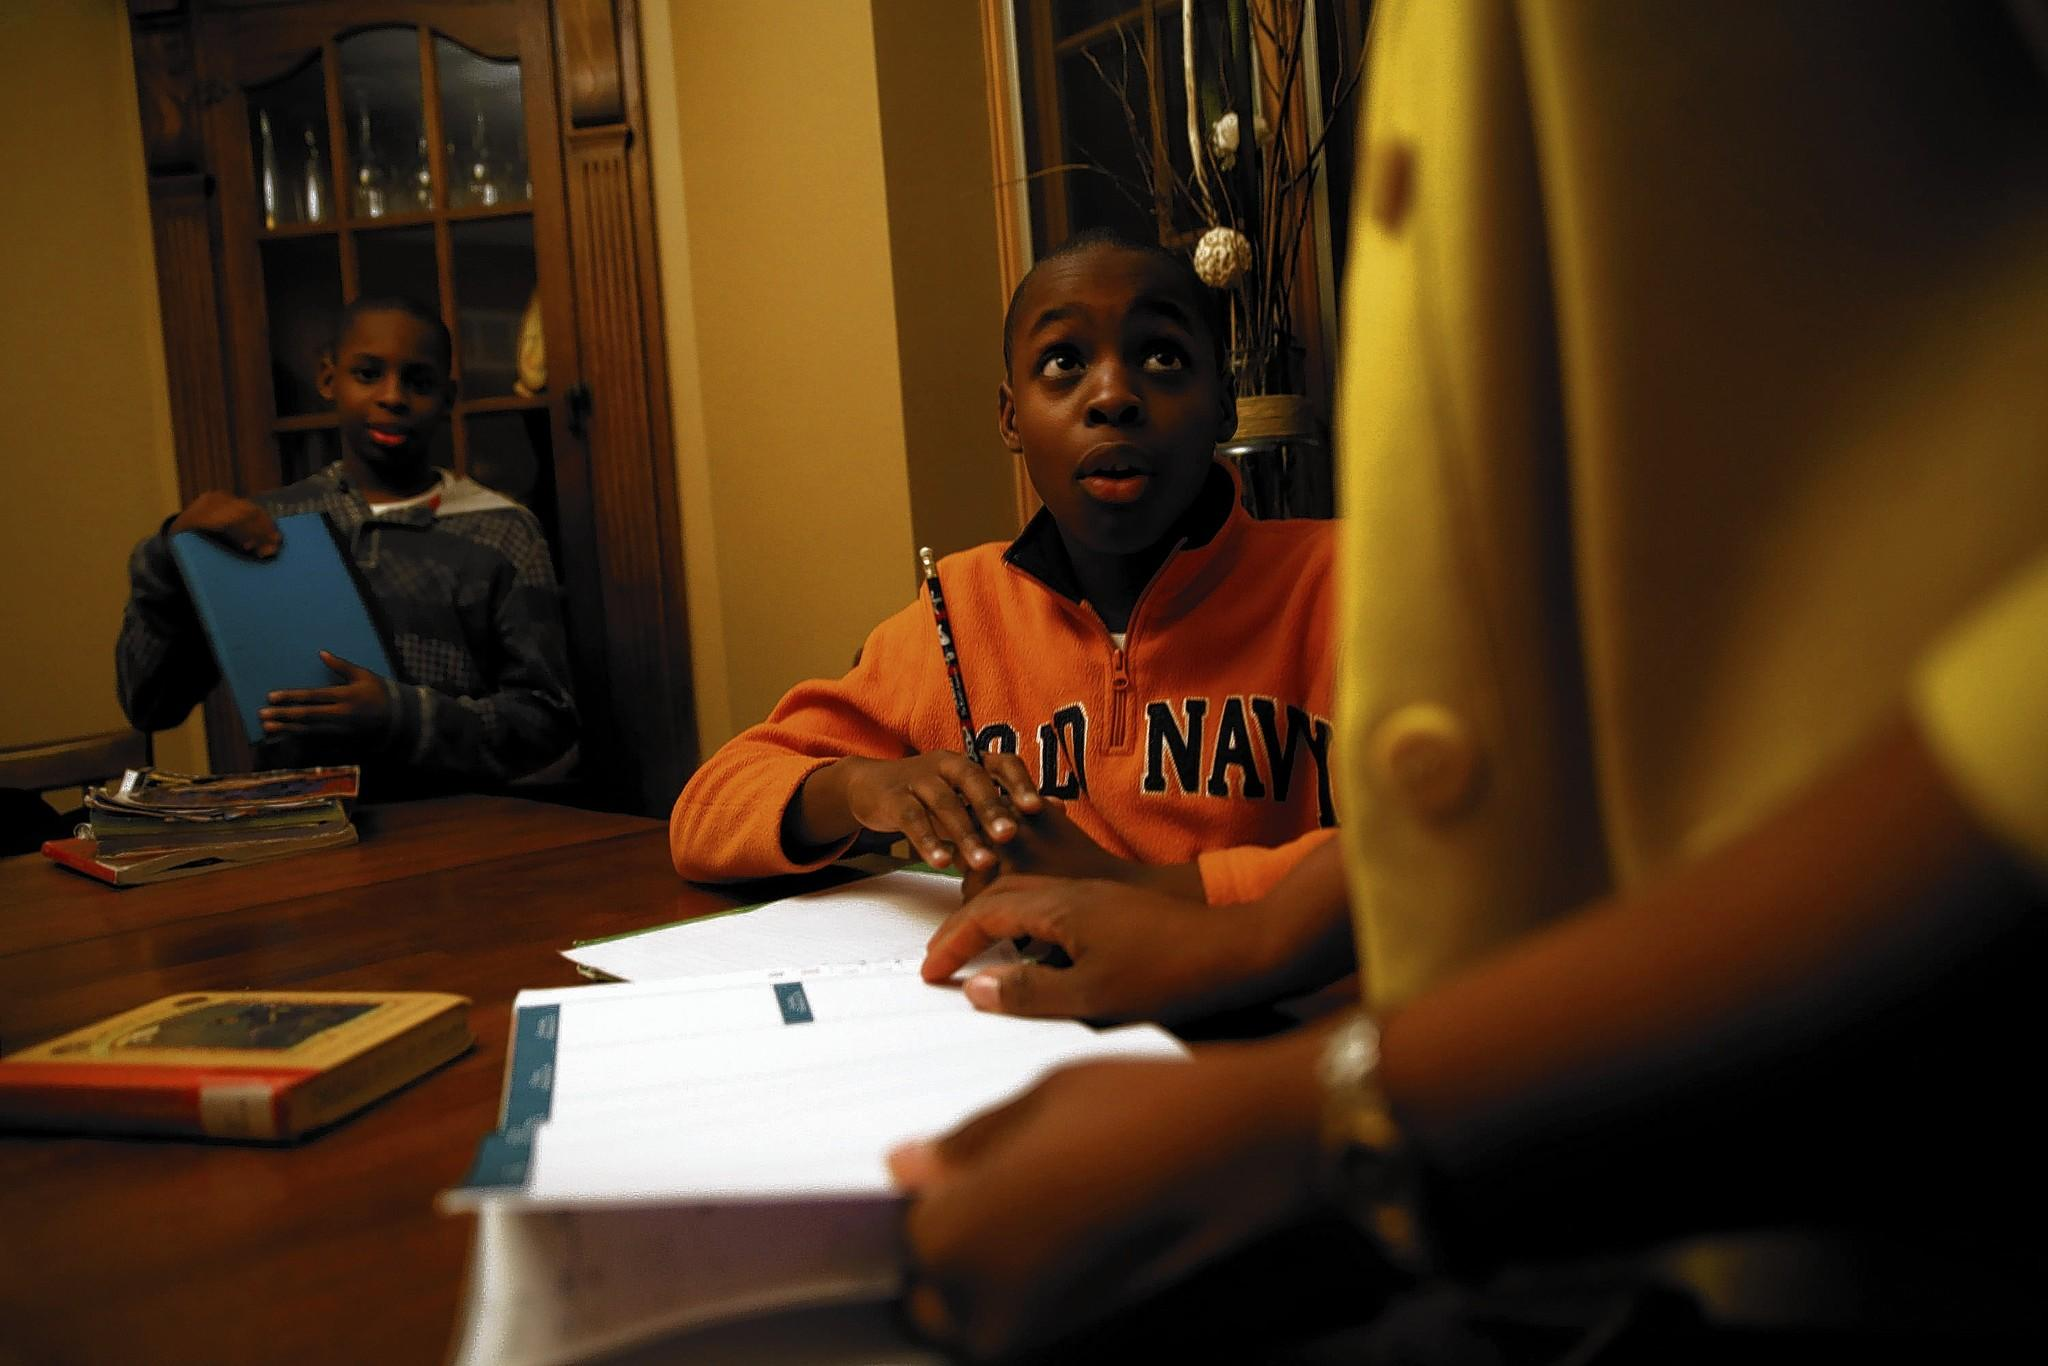 Sixth-grade twin brothers Bryce, right, and Brandon Jenkins get homework help Monday from their mother, Cherya, who is concerned that Chicago Public School students taking the new assessment test for selective-enrollment high schools will be at a disadvantage against private school students taking the same test as in previous years.